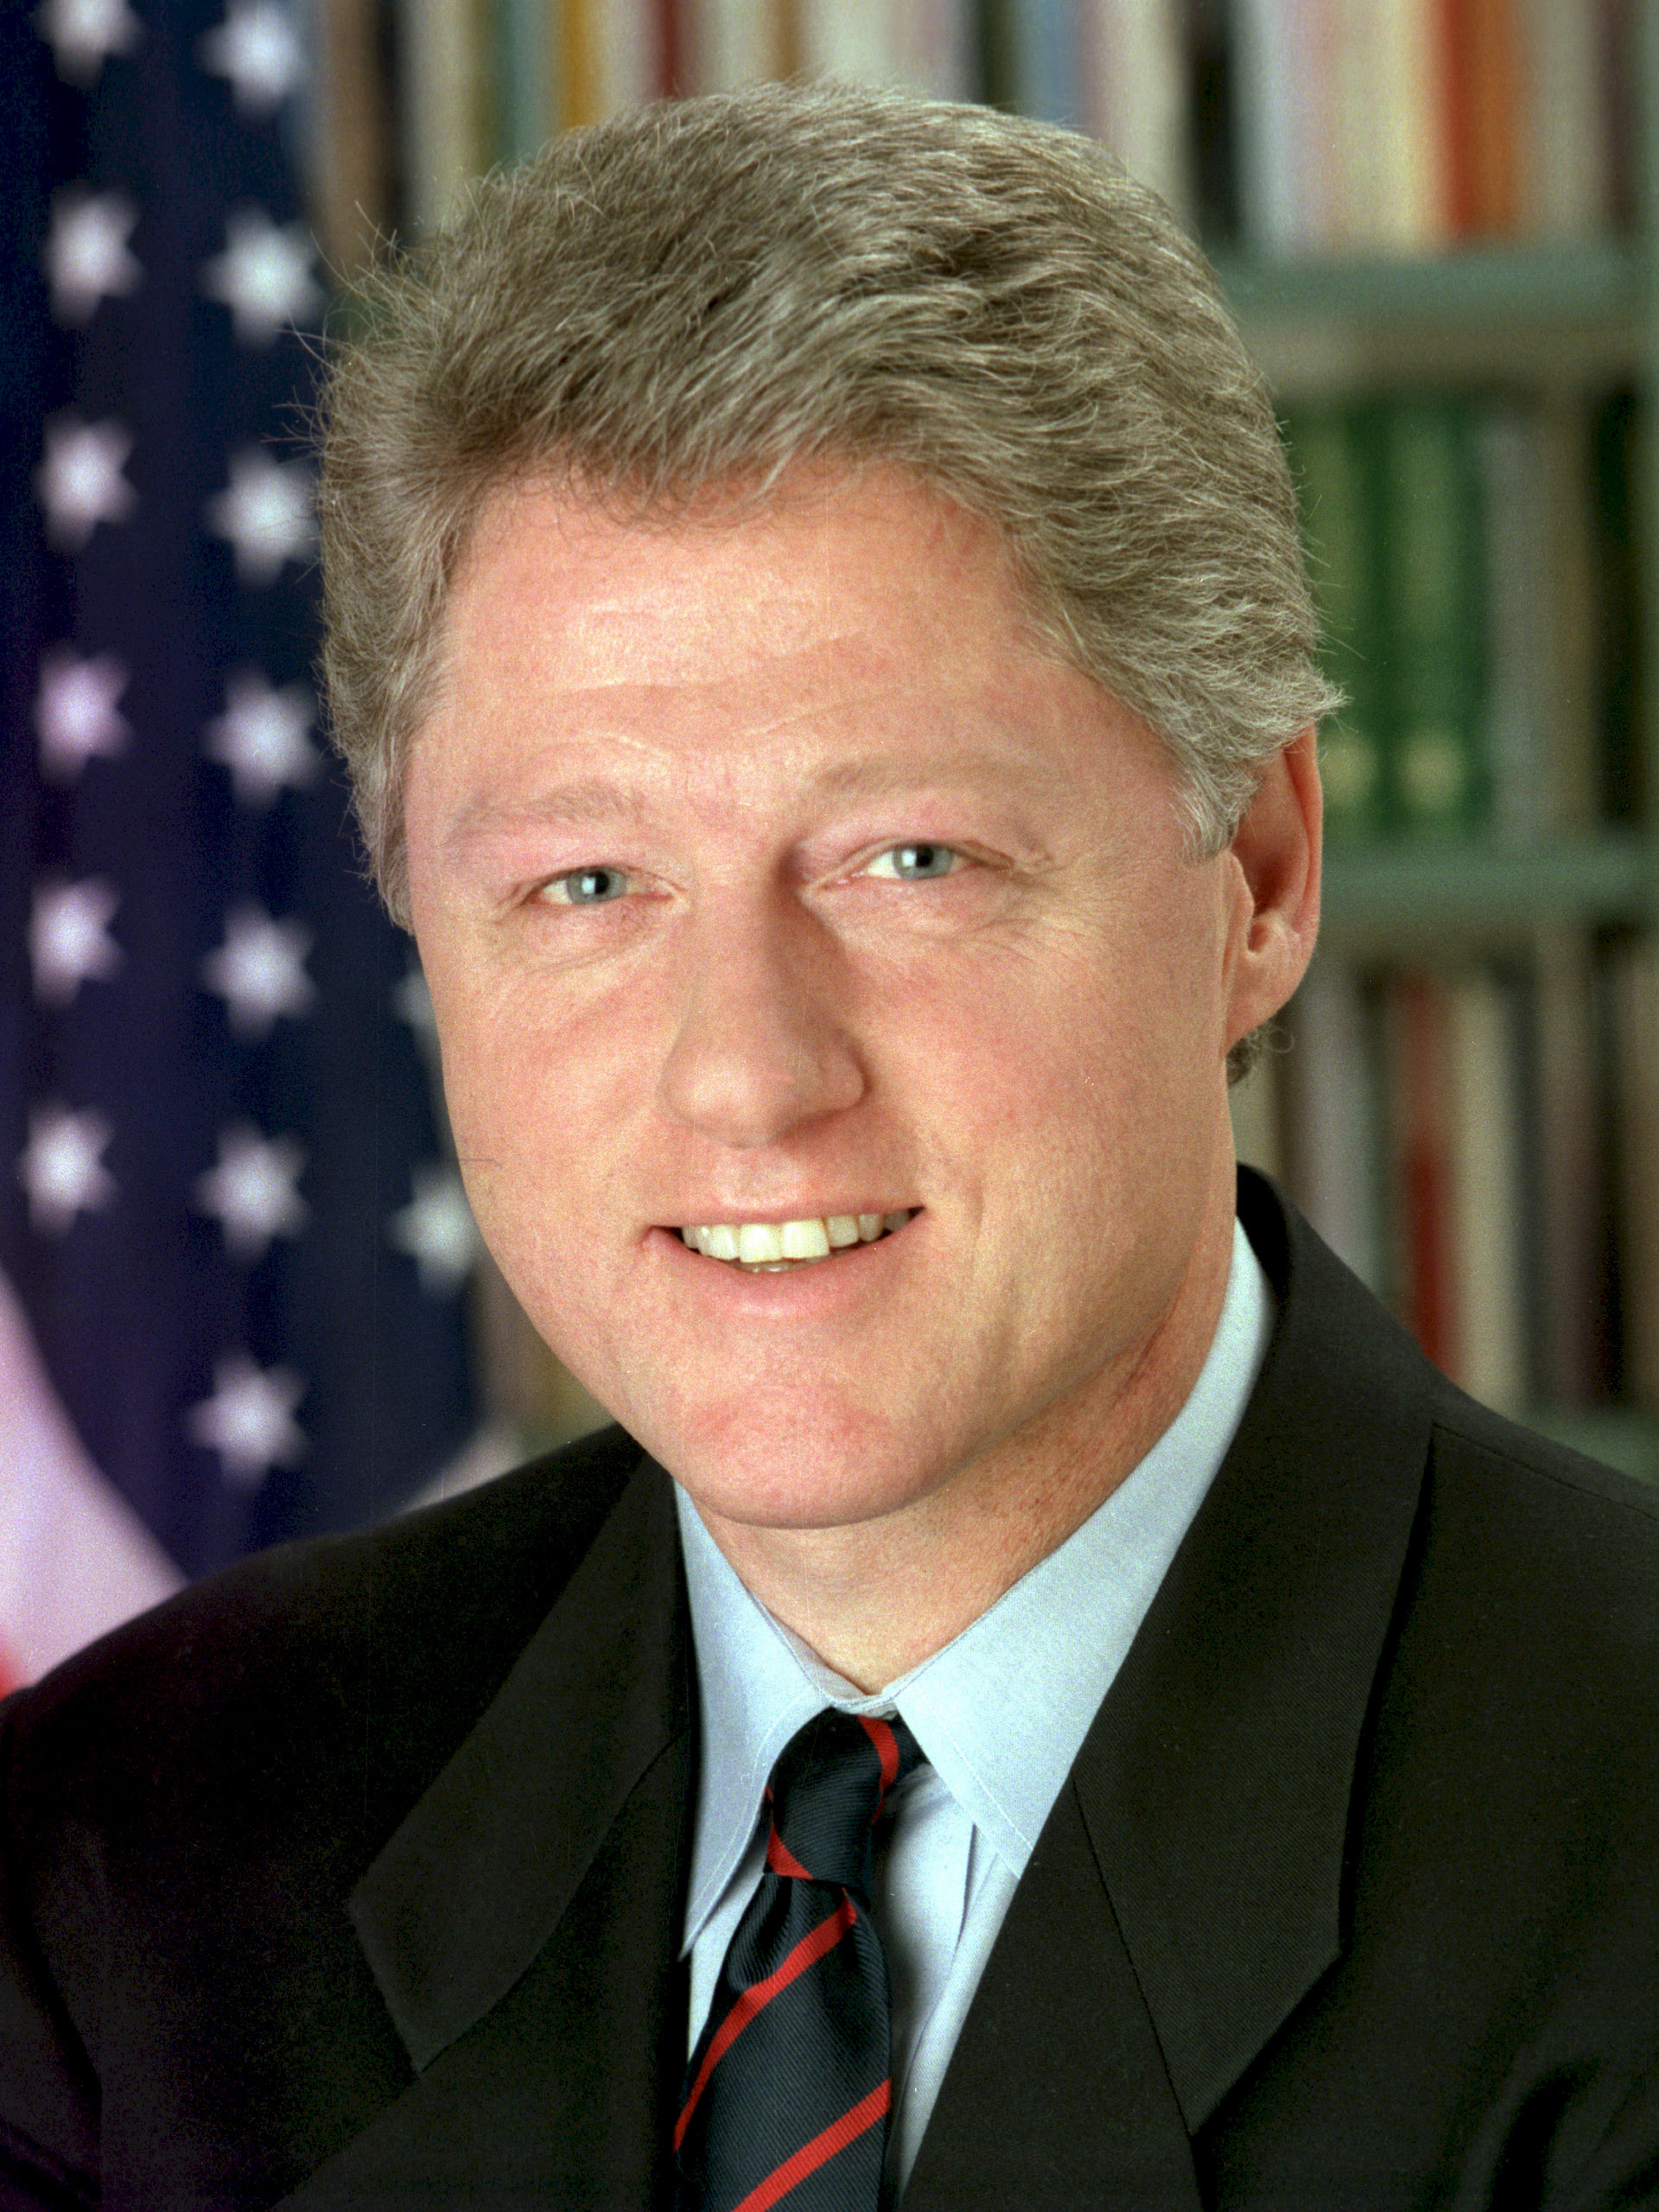 Photo of Bill Clinton: 42nd President of the United States